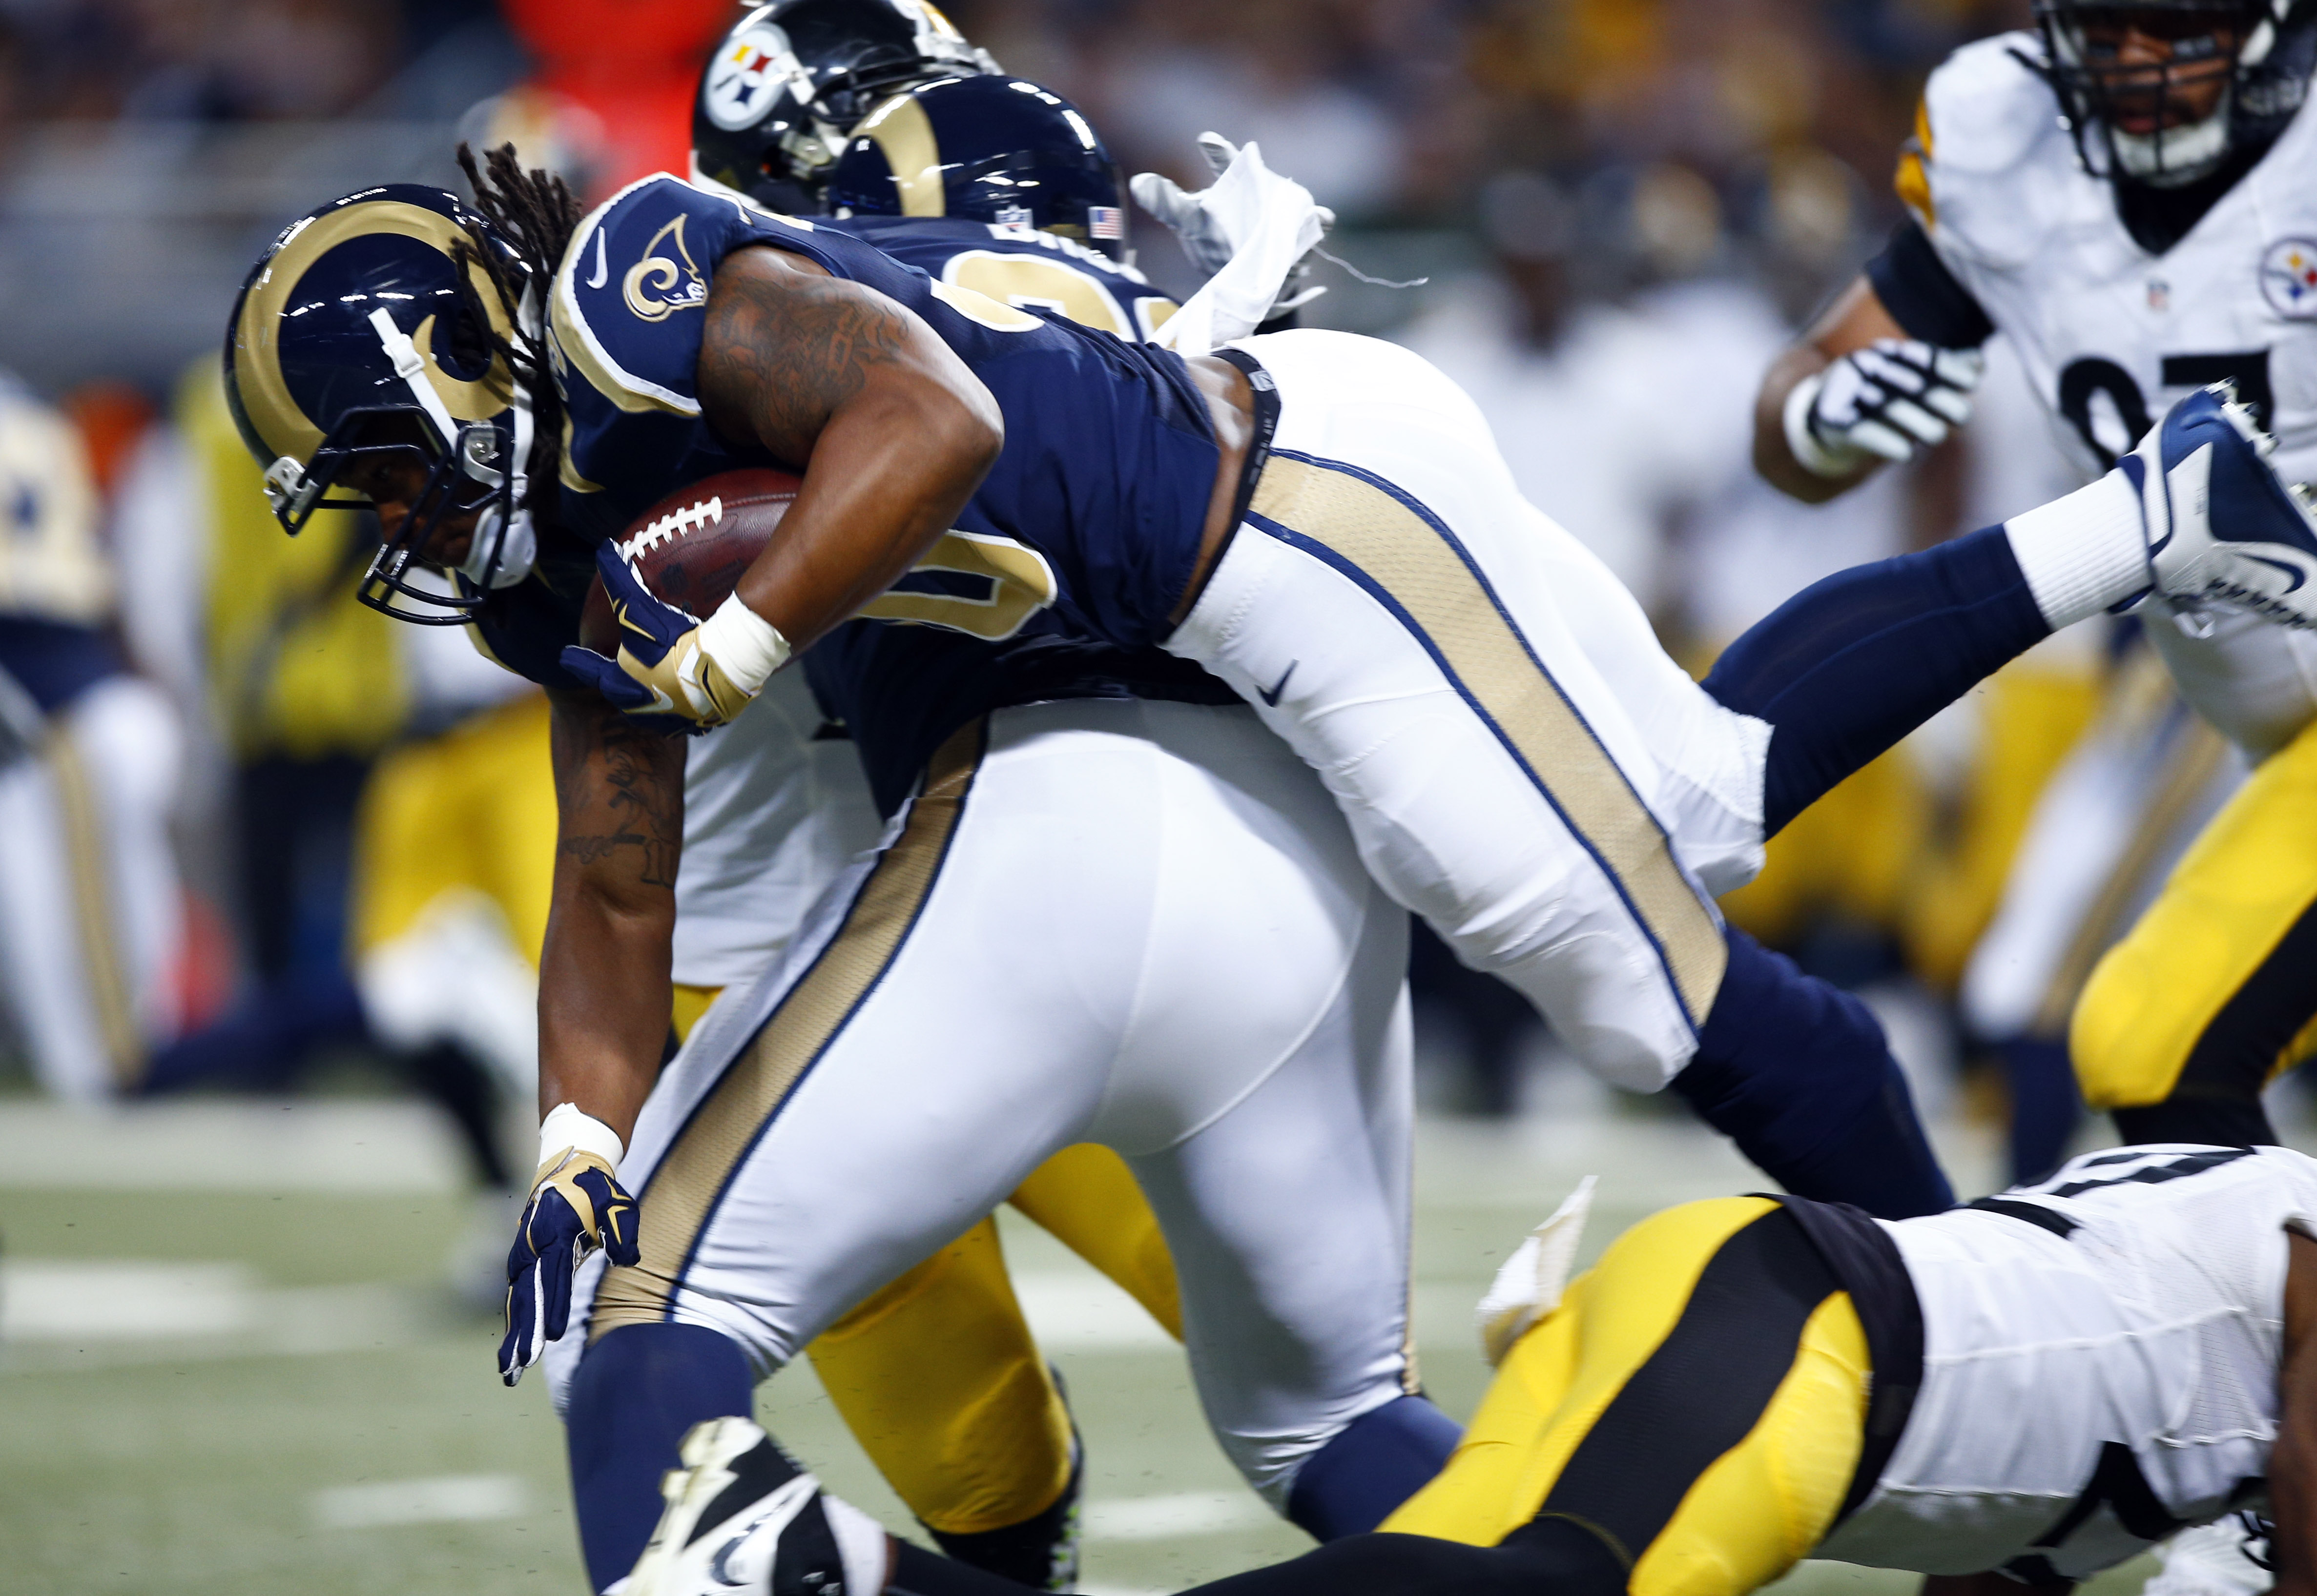 St. Louis Rams running back Todd Gurley runs the ball during the second quarter of an NFL football game against the Pittsburgh Steelers, Sunday, Sept. 27, 2015, in St. Louis. (AP Photo/Billy Hurst)